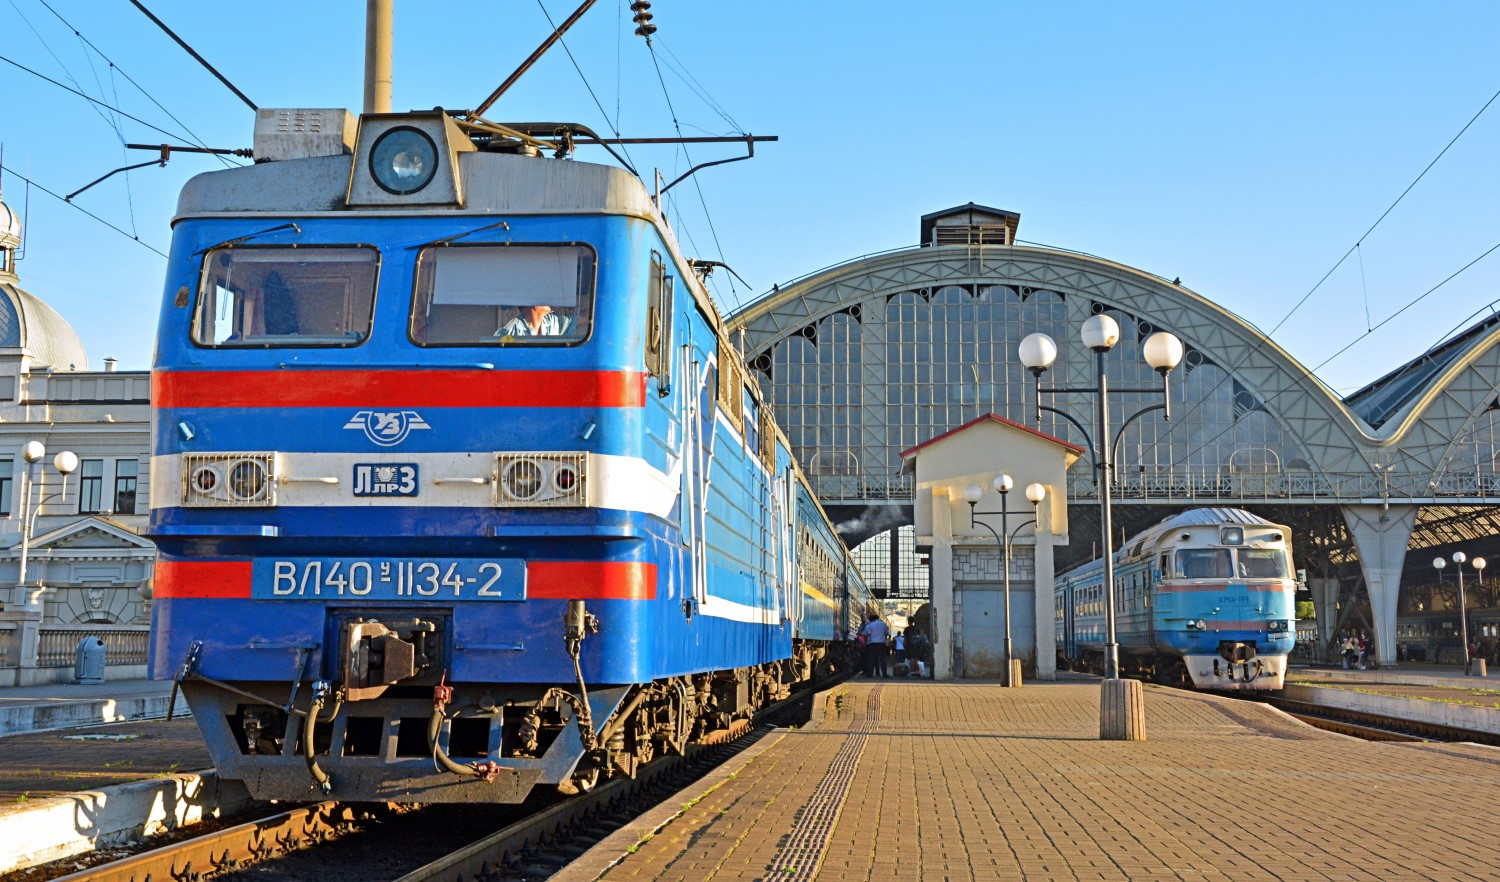 Ukrainian Railways Branch Caught Mining Crypto With State Power - Coindesk